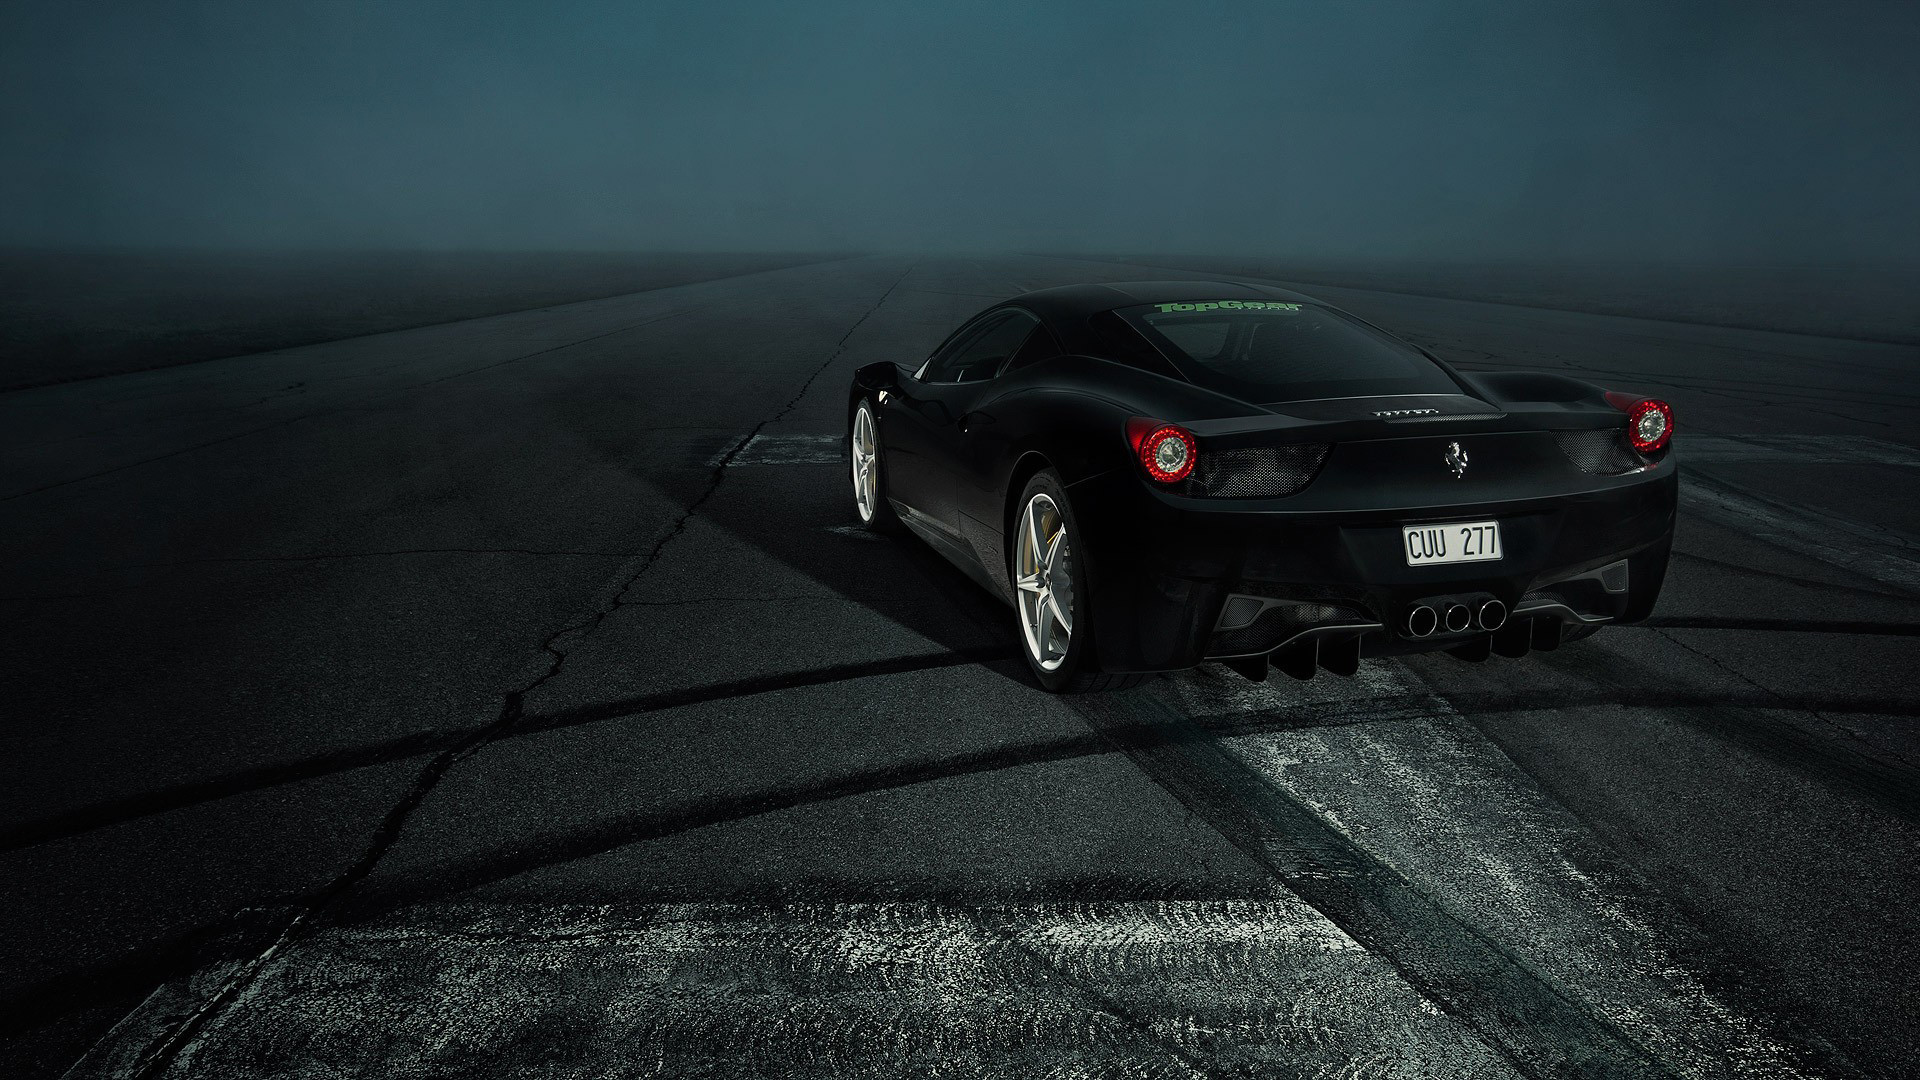 Res: 1920x1080, Black Ferrari Wallpapers For Android